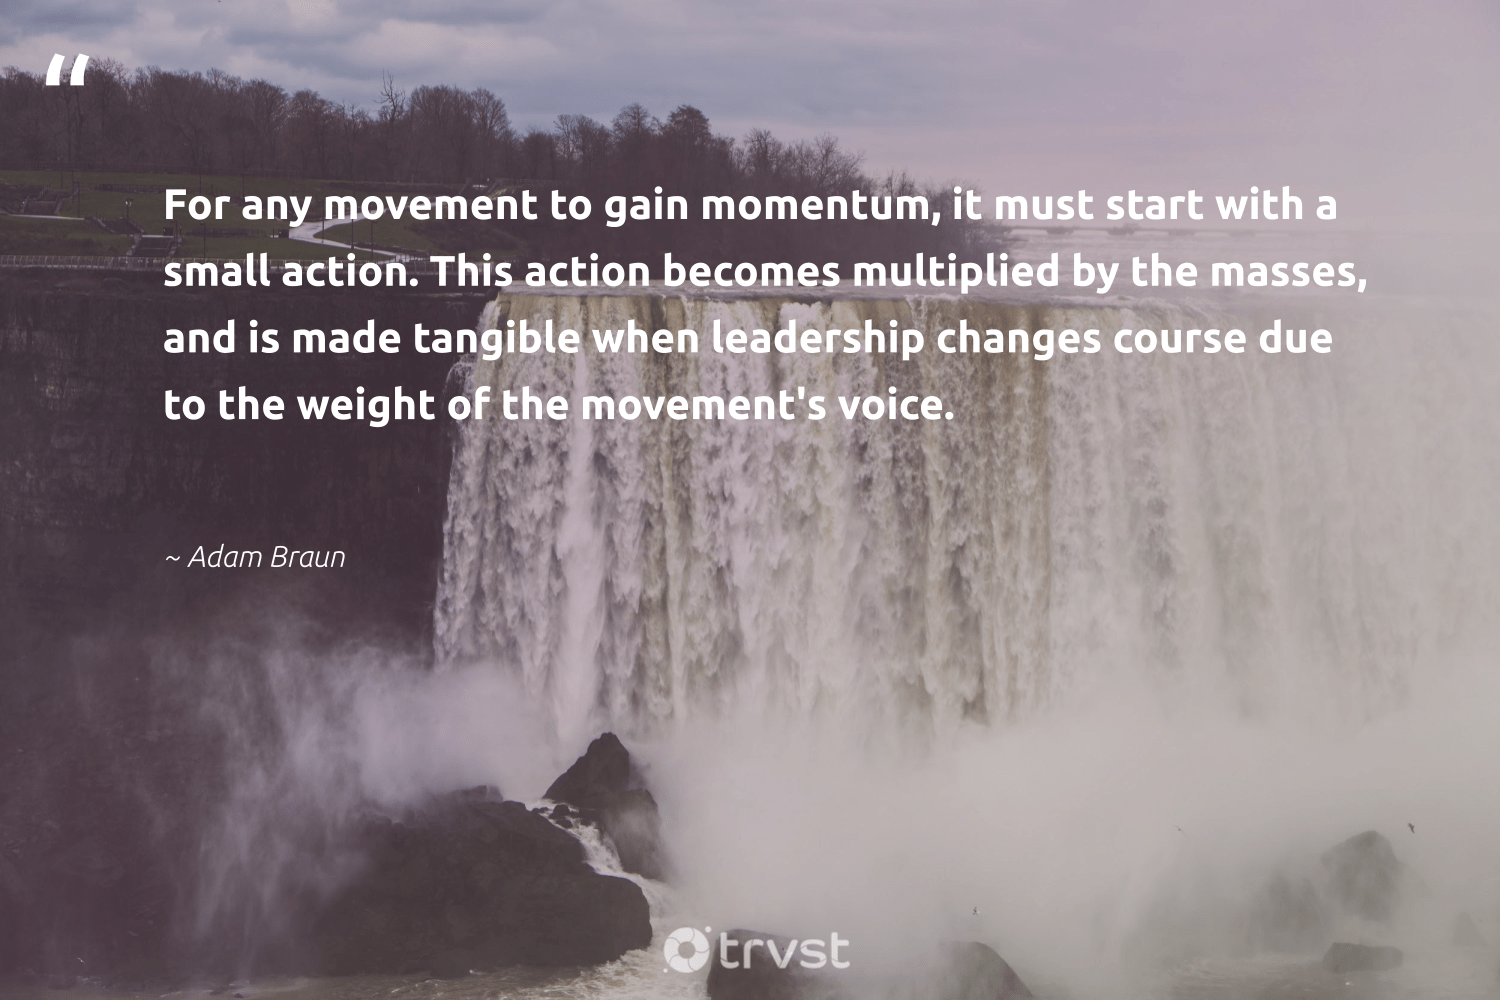 """For any movement to gain momentum, it must start with a small action. This action becomes multiplied by the masses, and is made tangible when leadership changes course due to the weight of the movement's voice.""  - Adam Braun #trvst #quotes #leadership #leadershipskills #softskills #futureofwork #socialchange #leadershipdevelopment #begreat #nevergiveup #gogreen #leadershipqualities"